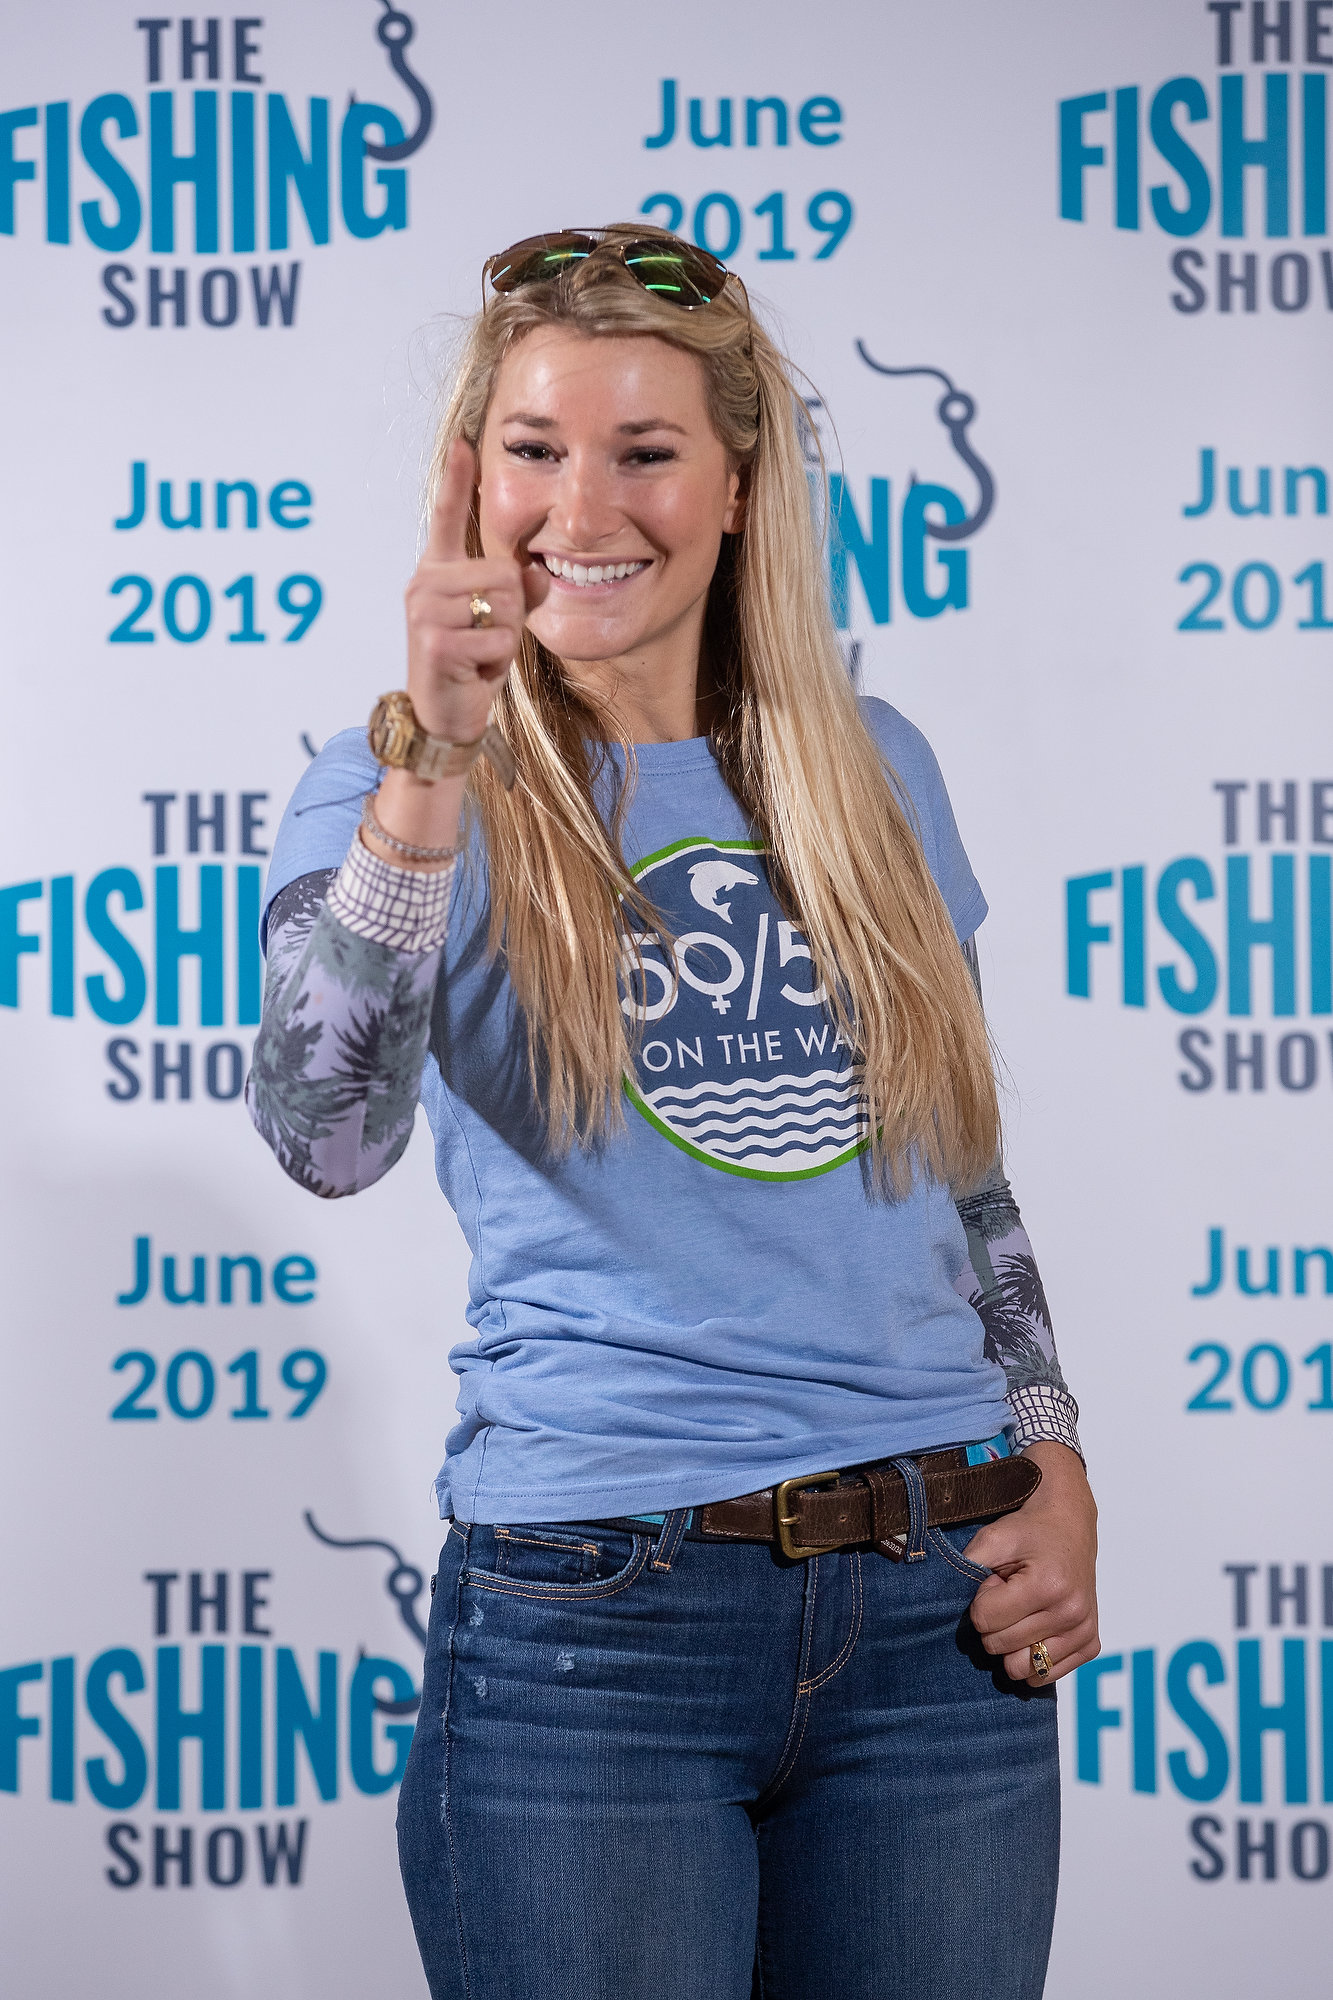 Yorkshire is No.1 - the launch of The Fishing Show excited many anglers, but sadly it's been cancelled. However the region is still a winner in EA statistics. Pic: Charlotte Graham.